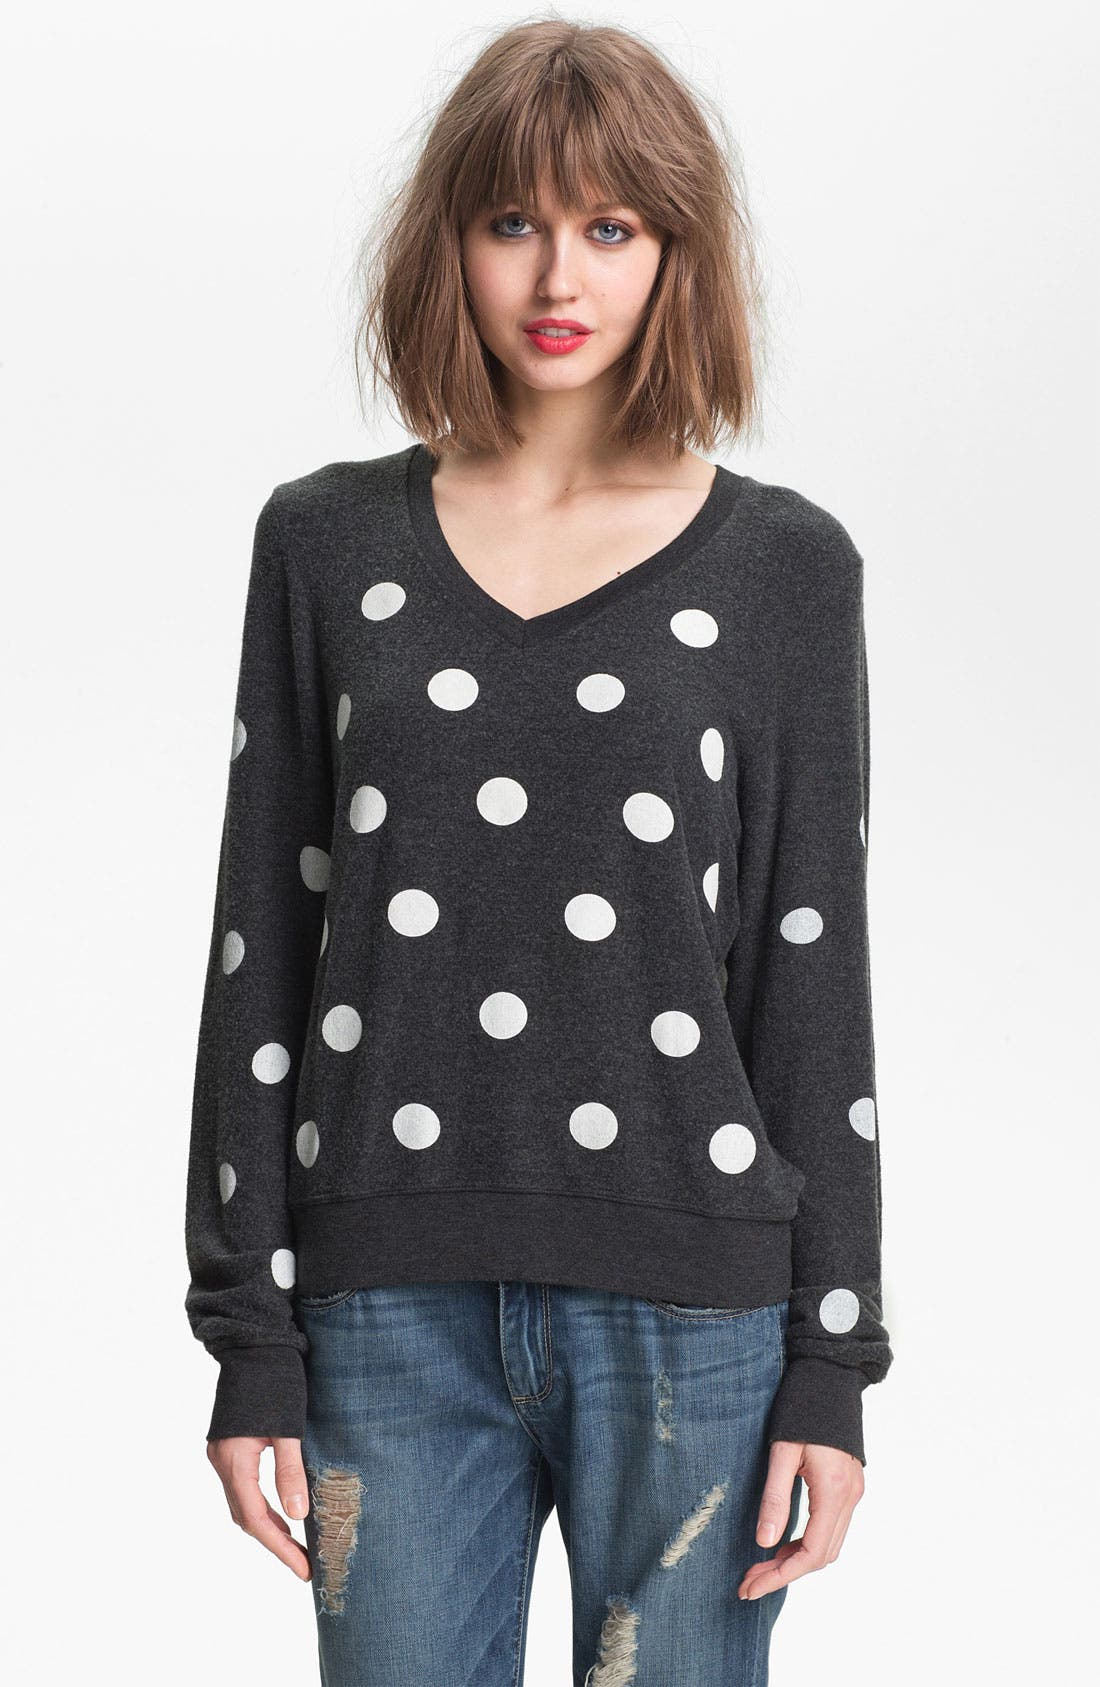 Alternate Image 1 Selected - Wildfox Polka Dot Sweatshirt (Nordstrom Exclusive)